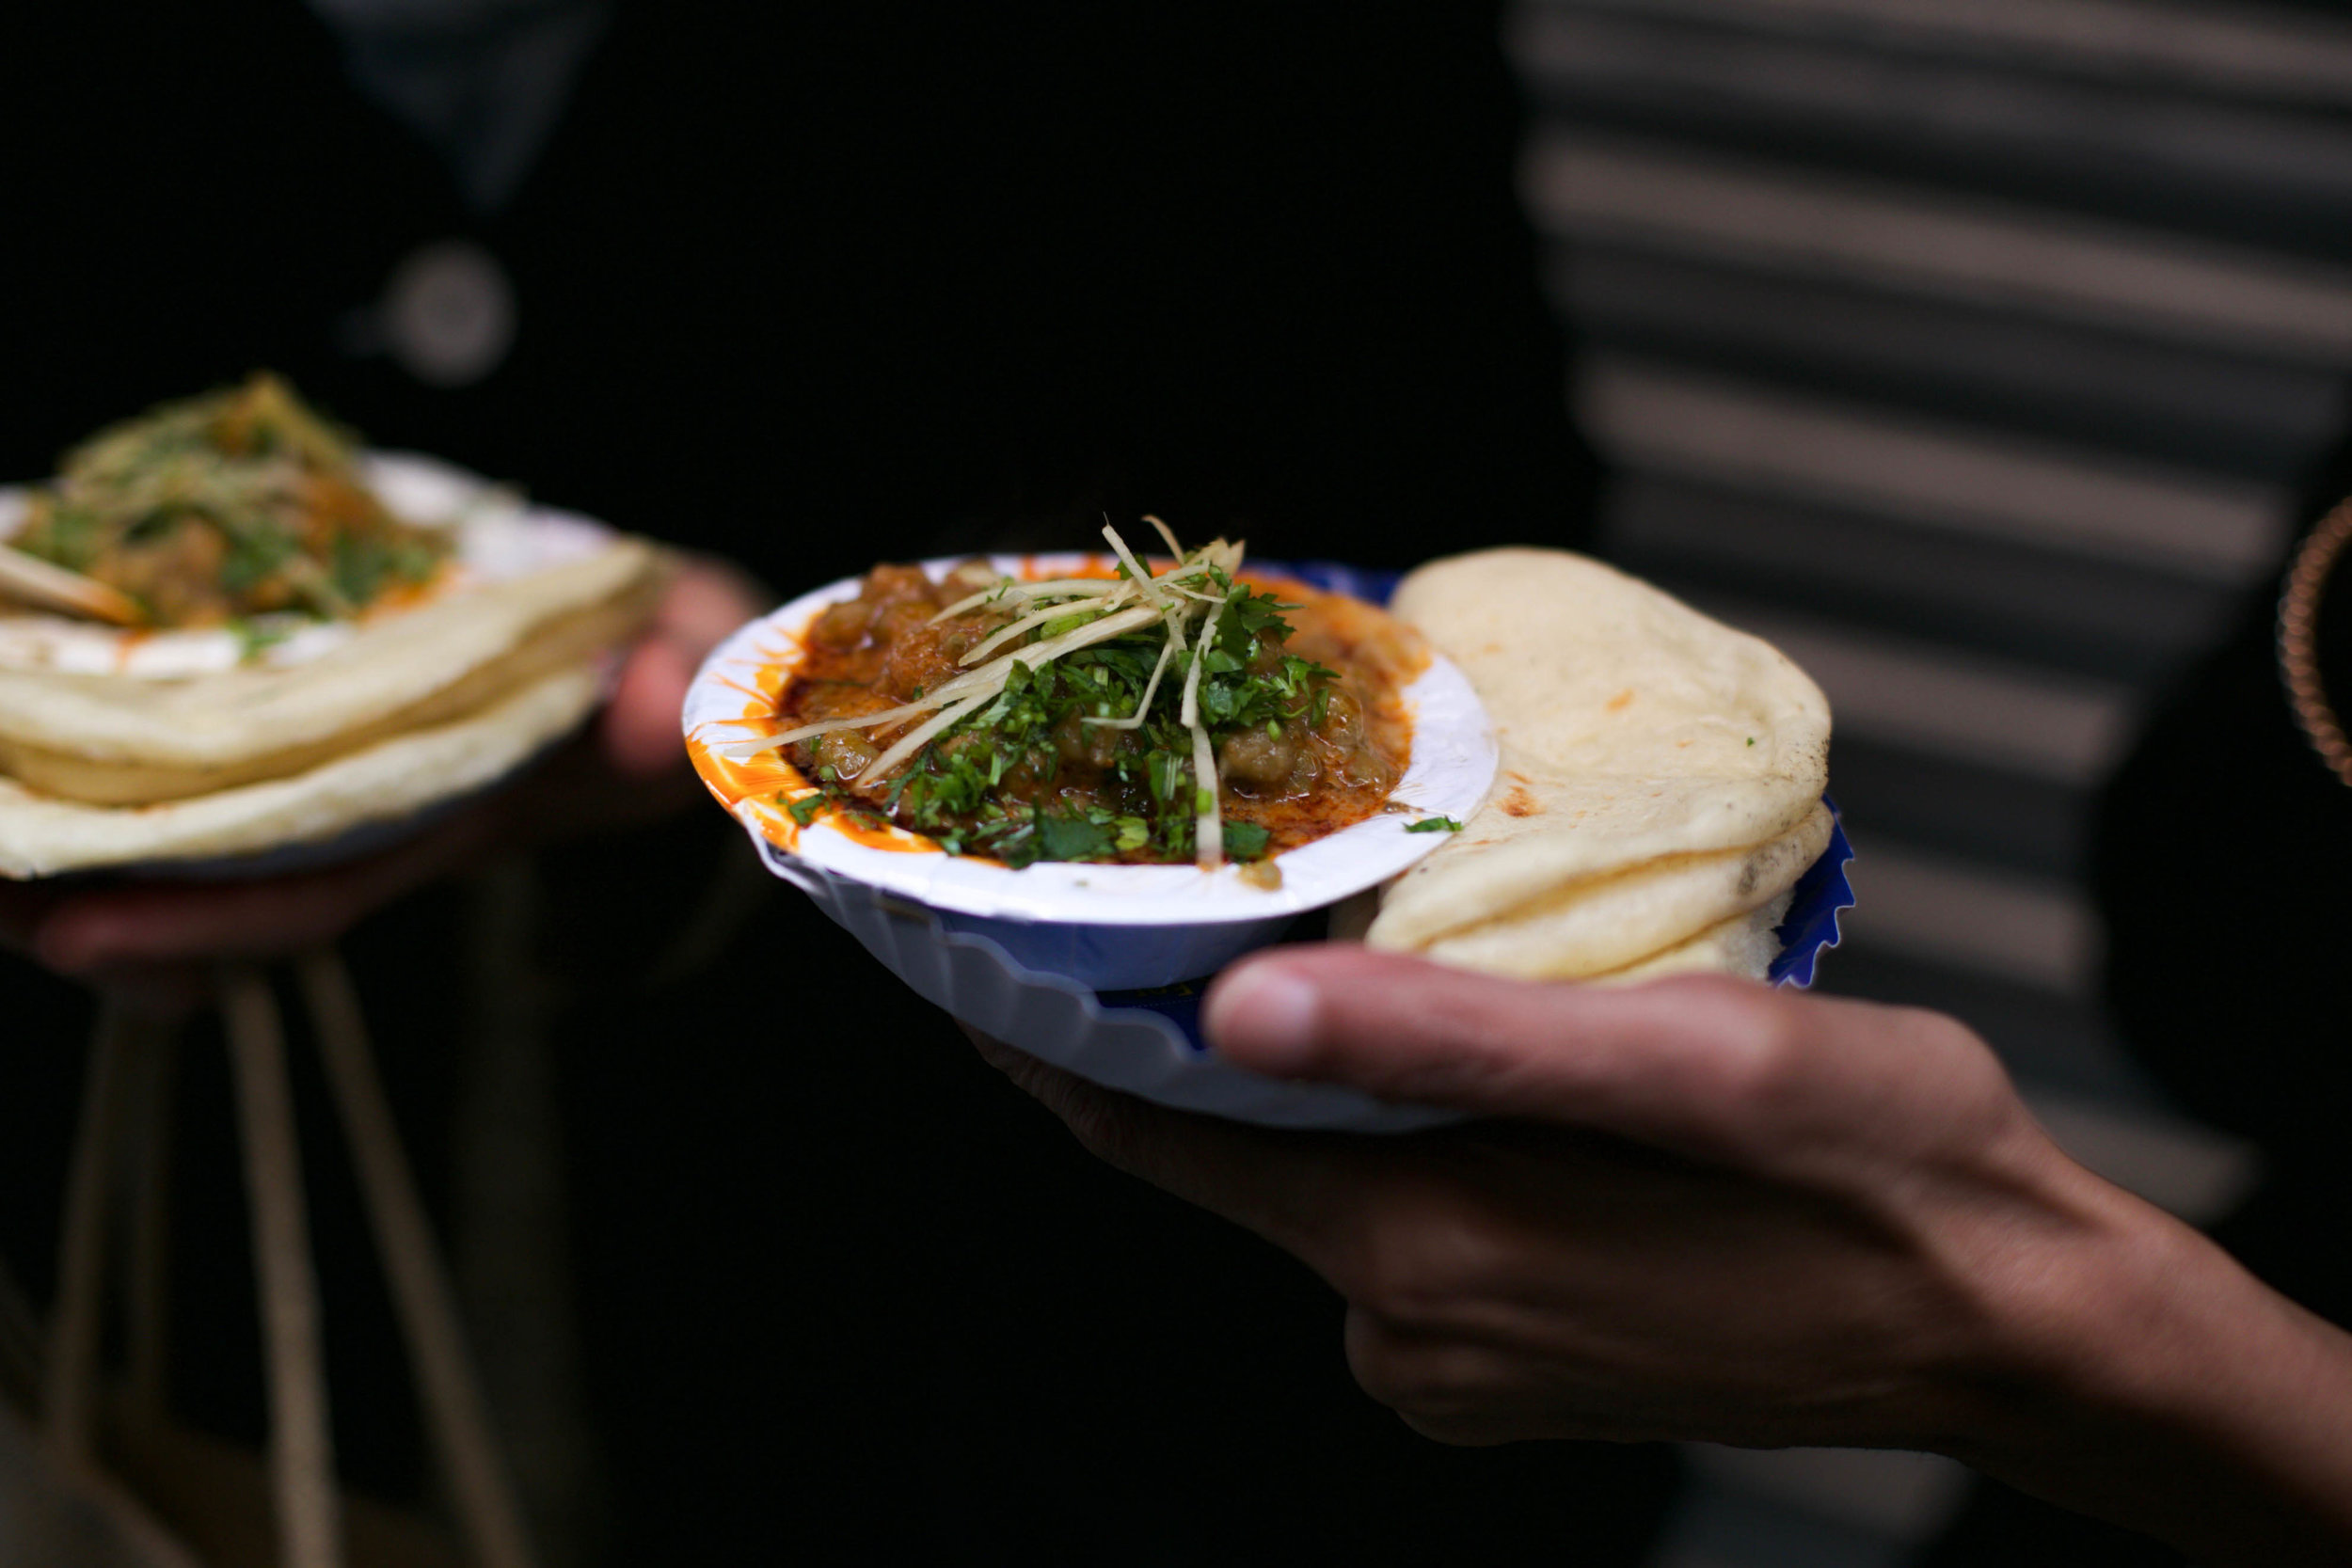 We stop for soft, warm kulchas paired with chole masala, a quintessentially Delhi dish. You can also have a glass of warm, spiced chickpea broth instead —equally delicious and full of 'takat' to survive the Delhi winter.